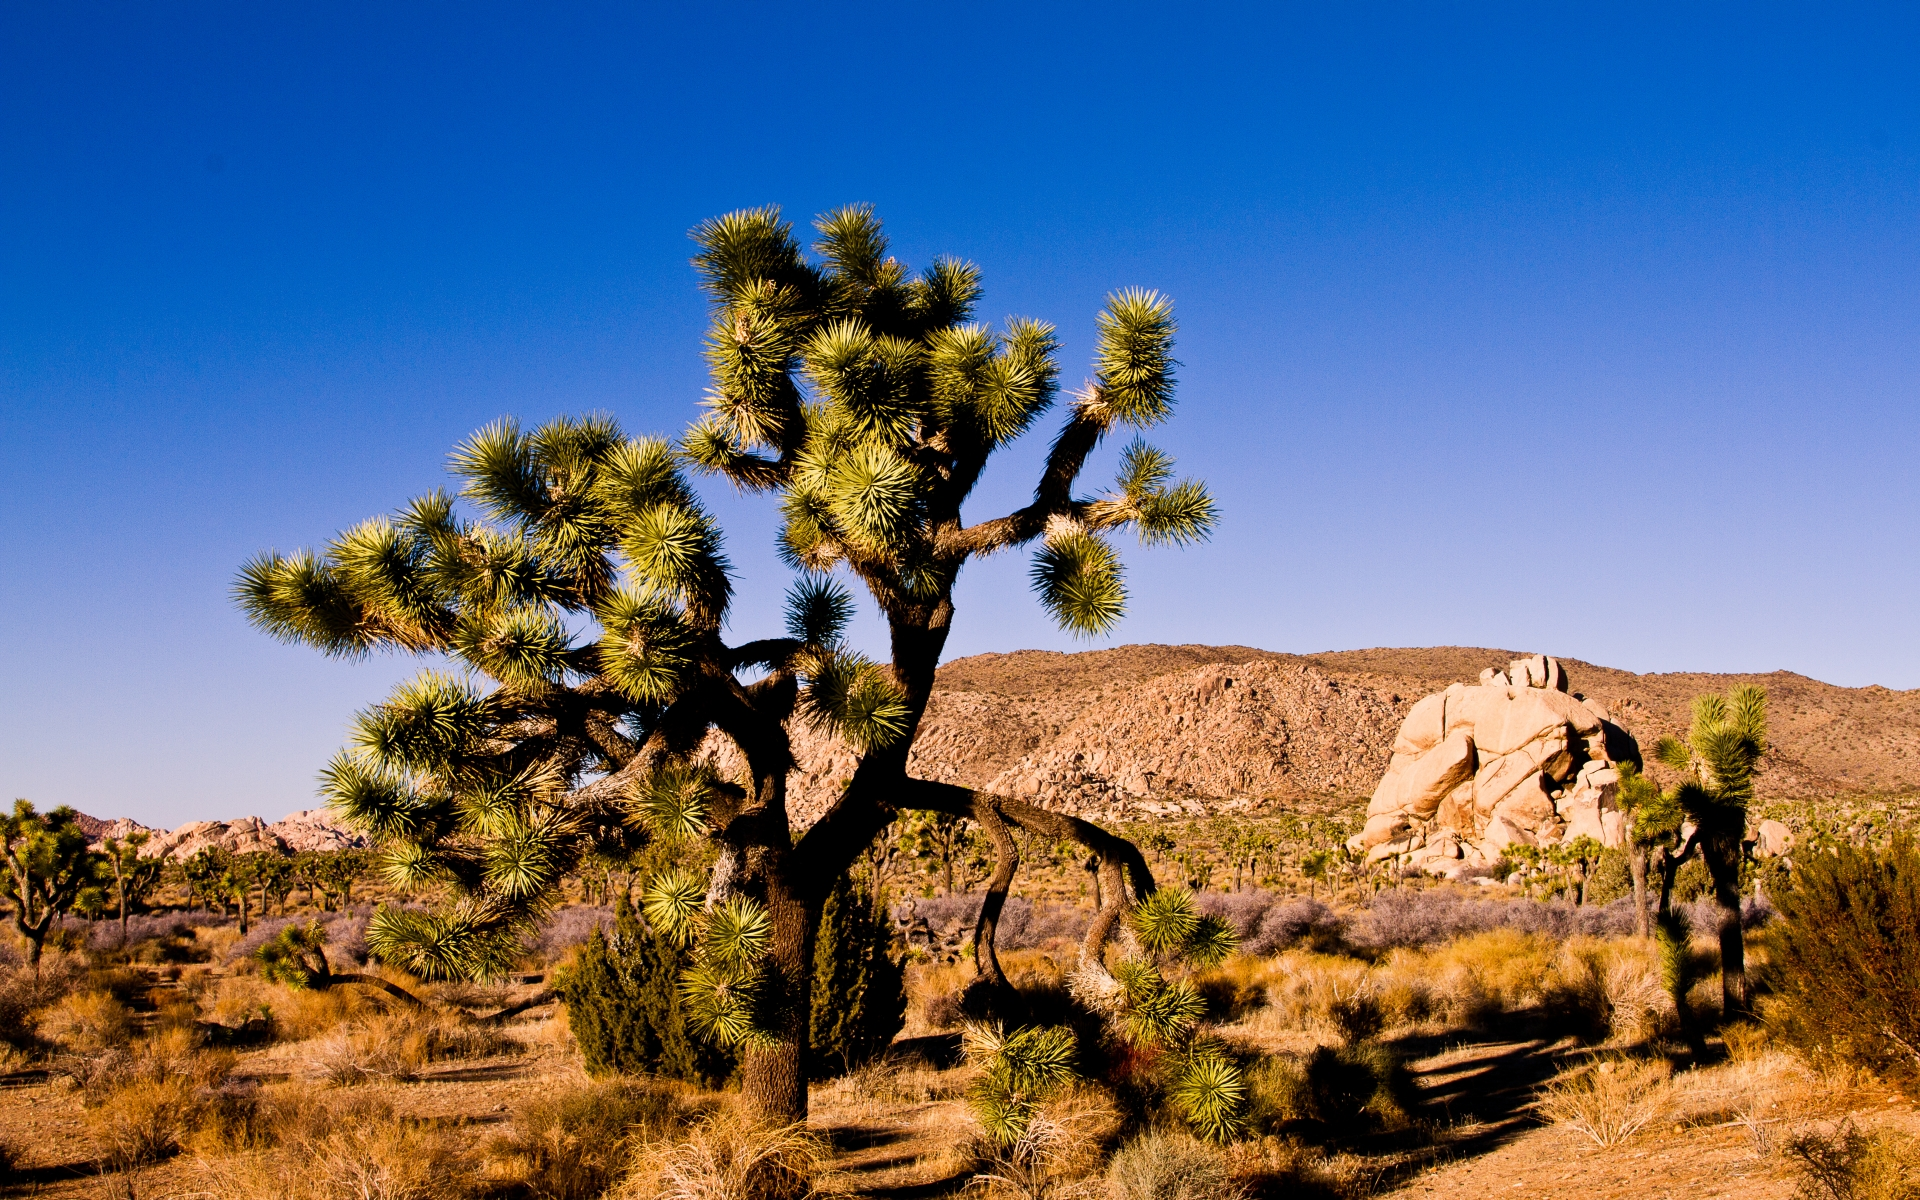 Hd Wallpapers Of S: Joshua Tree National Park HD Wallpapers